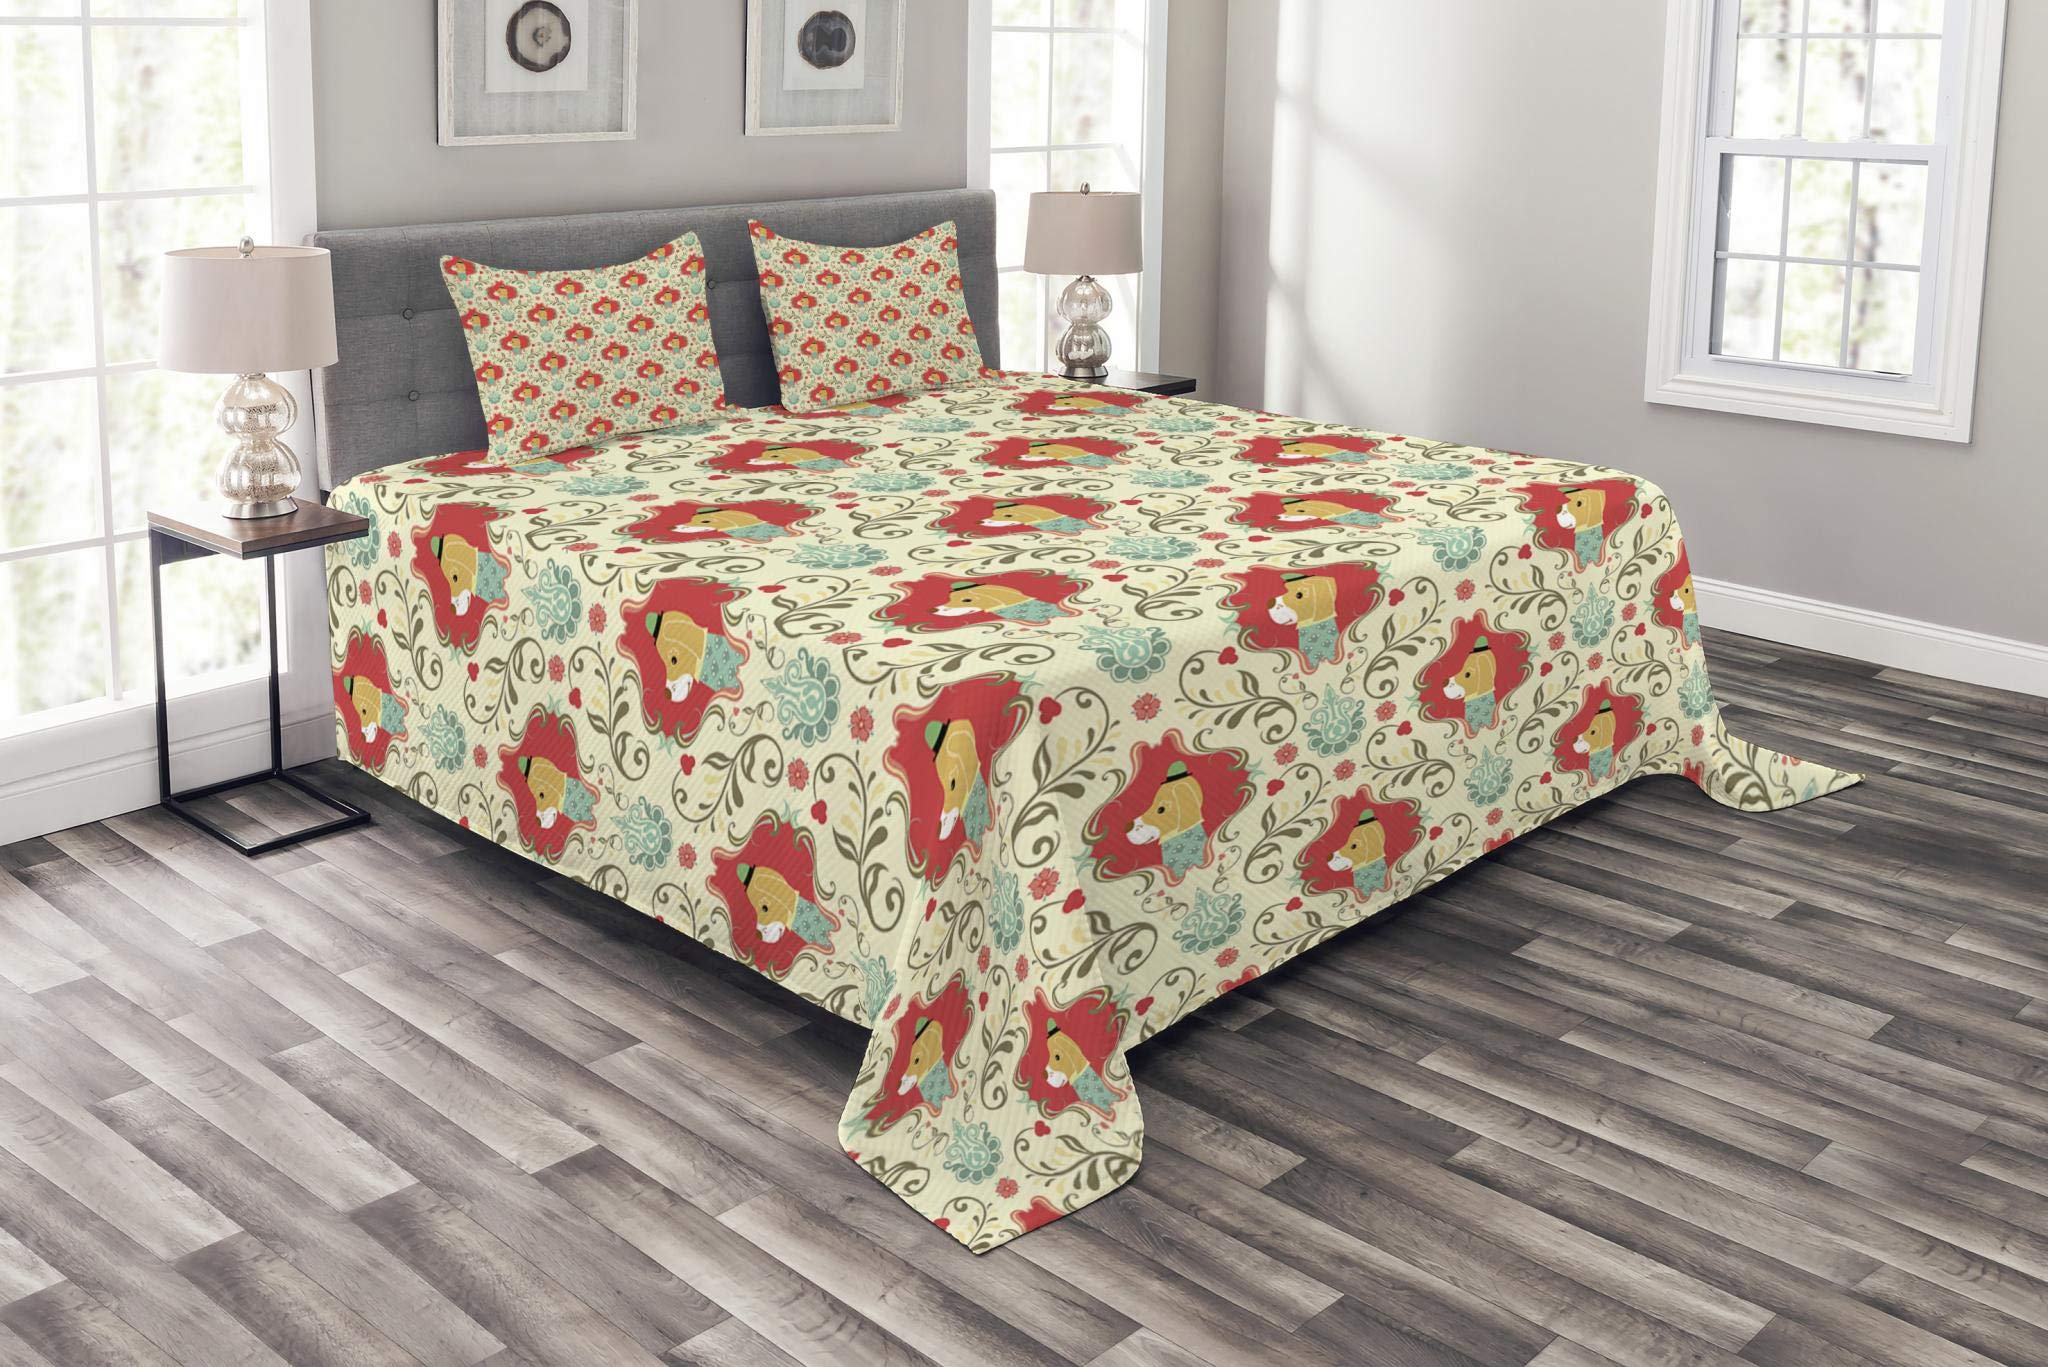 Lunarable Animal Bedspread Set Queen Size, Cute Puppies Dog Pattern with Chevron Classic Victorian Effects Design, Decorative Quilted 3 Piece Coverlet Set with 2 Pillow Shams, Cream Red Mint Green